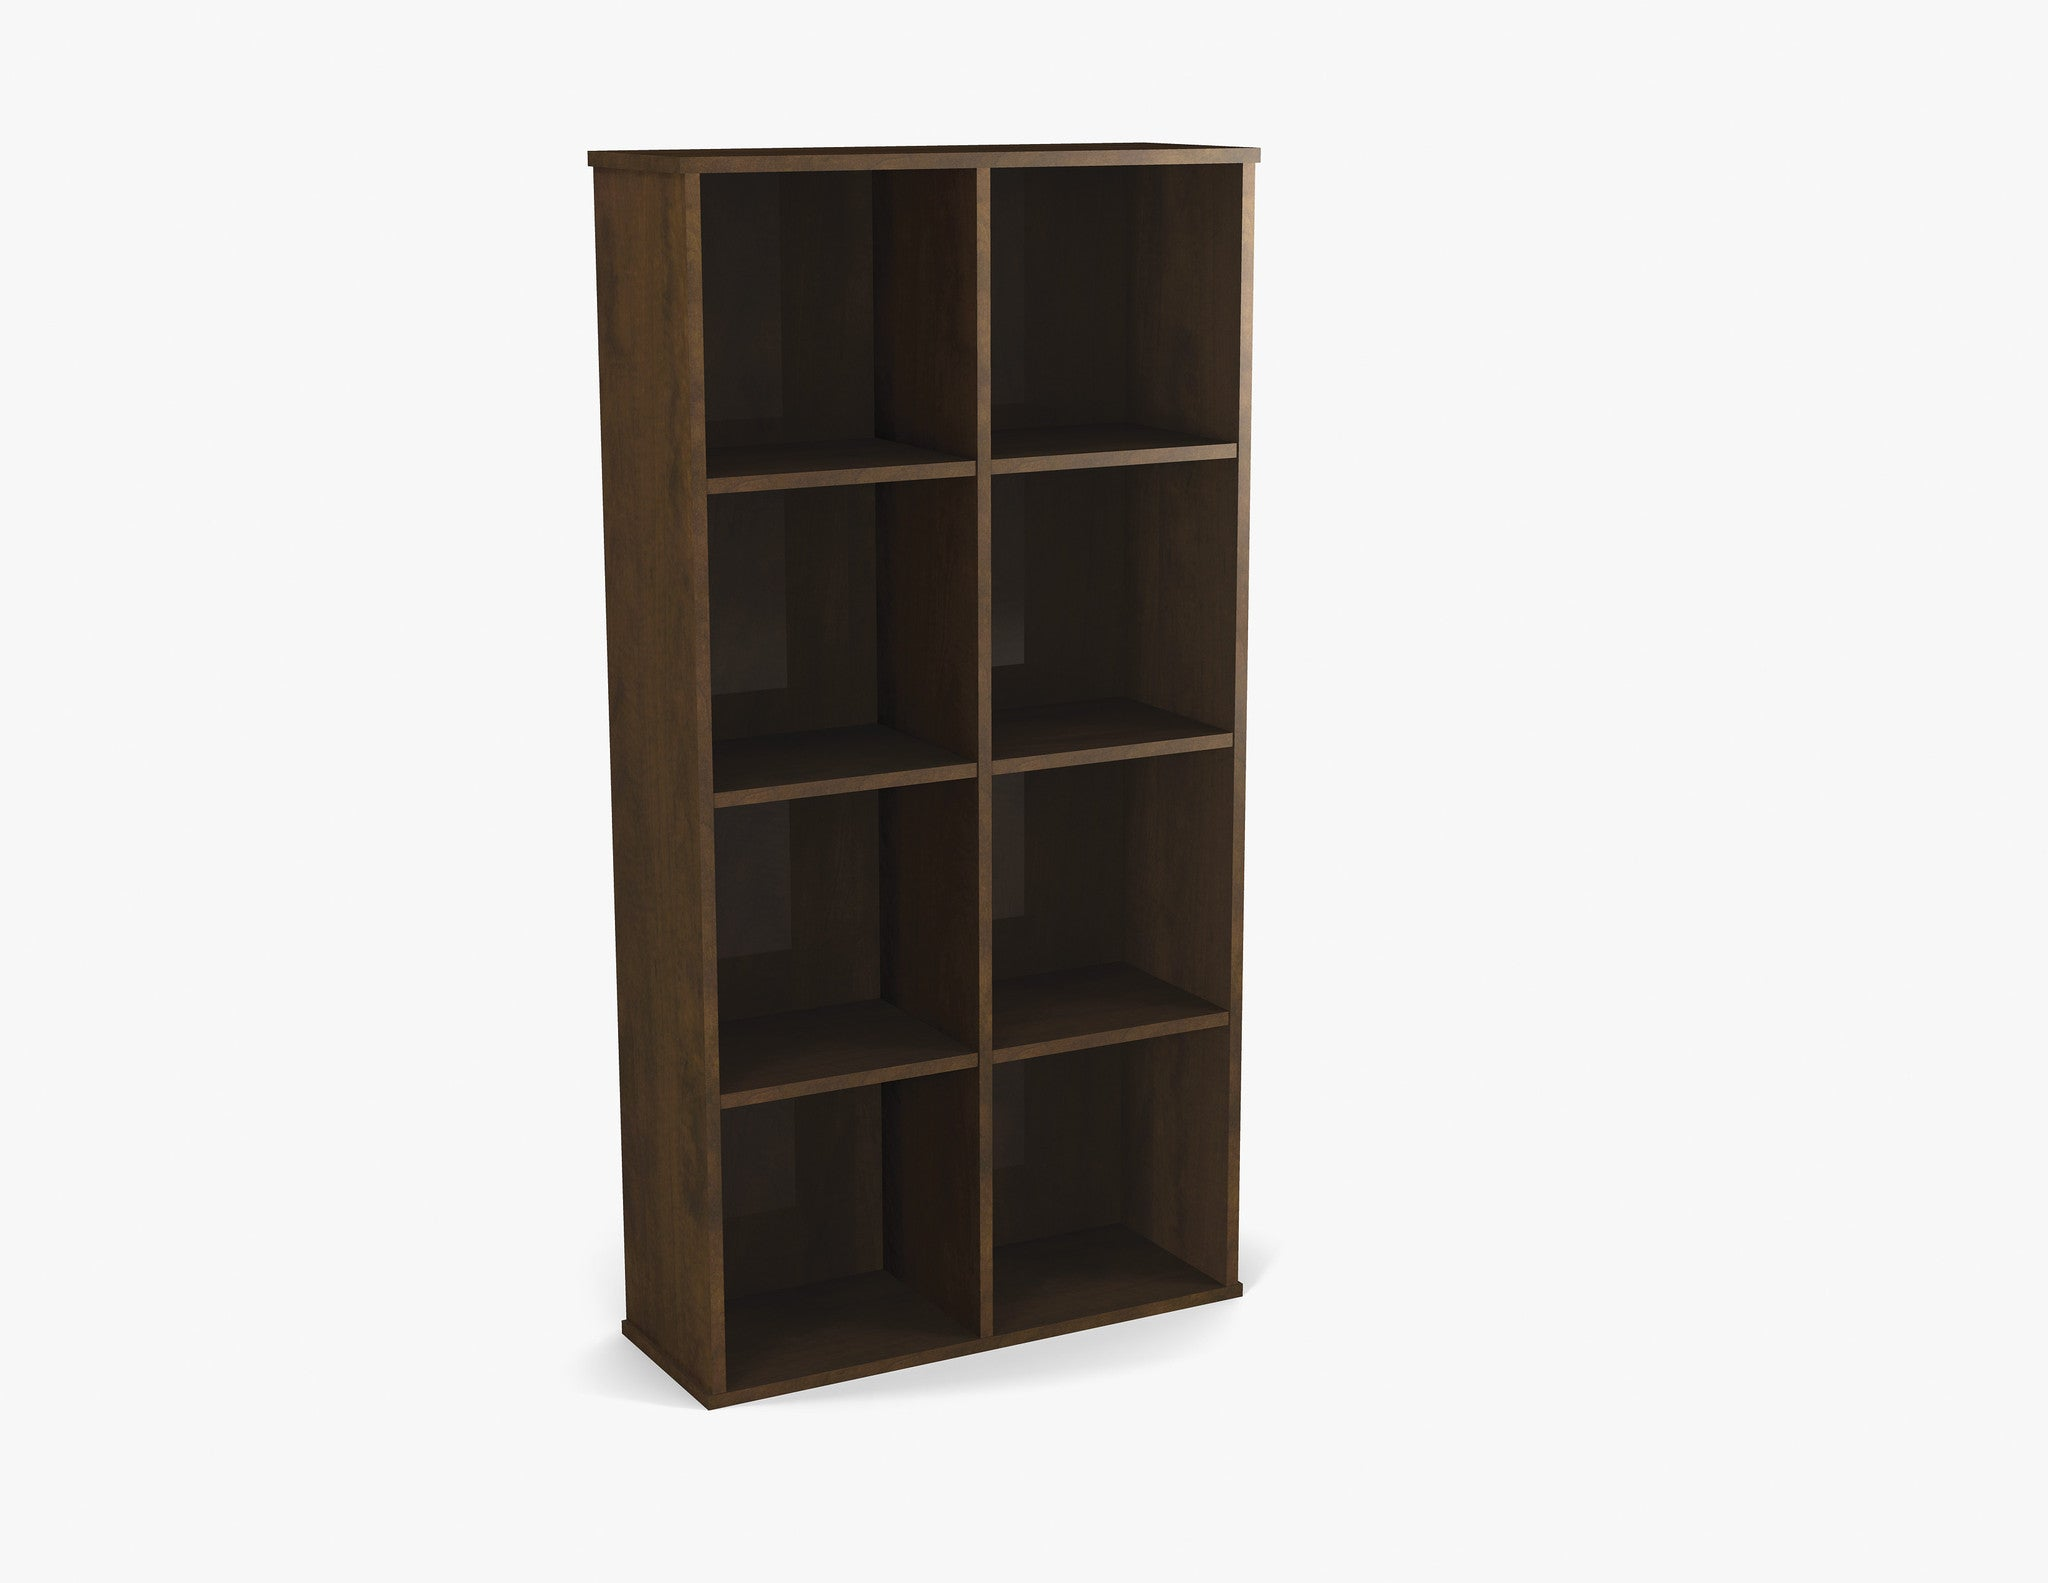 "Cubby Style 4 Shelf 63"" Tall Bookcase in Chocolate"